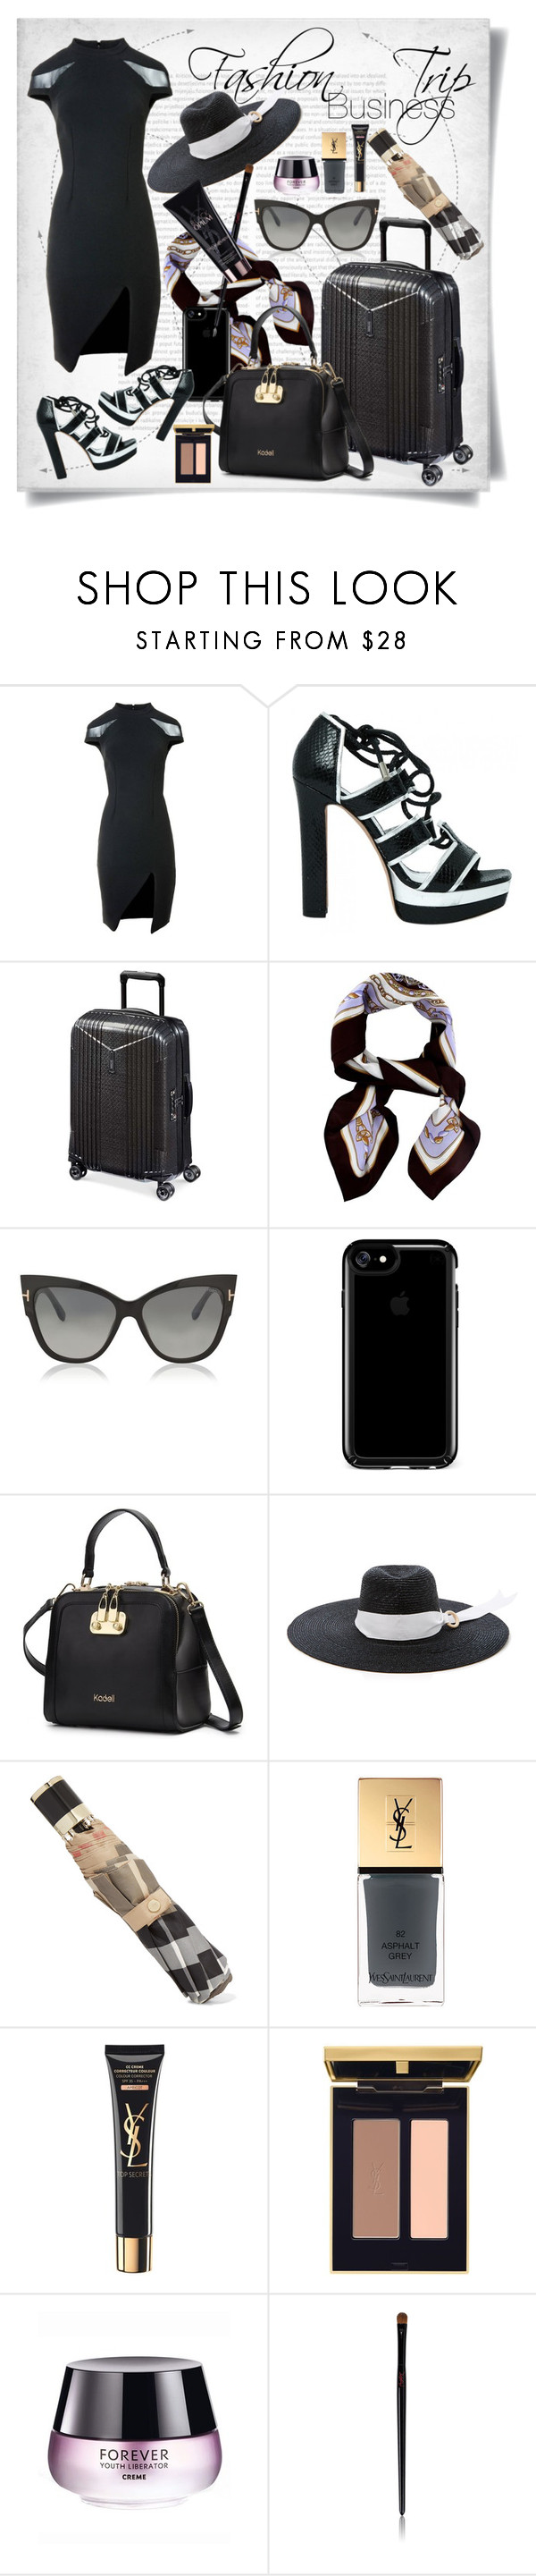 """""""Fashion Business Trip"""" by imbeauty ❤ liked on Polyvore featuring Sinclair London, Alexander McQueen, Hartmann, Tom Ford, Speck, Littledoe, Burberry, Yves Saint Laurent and BusinessTrip"""